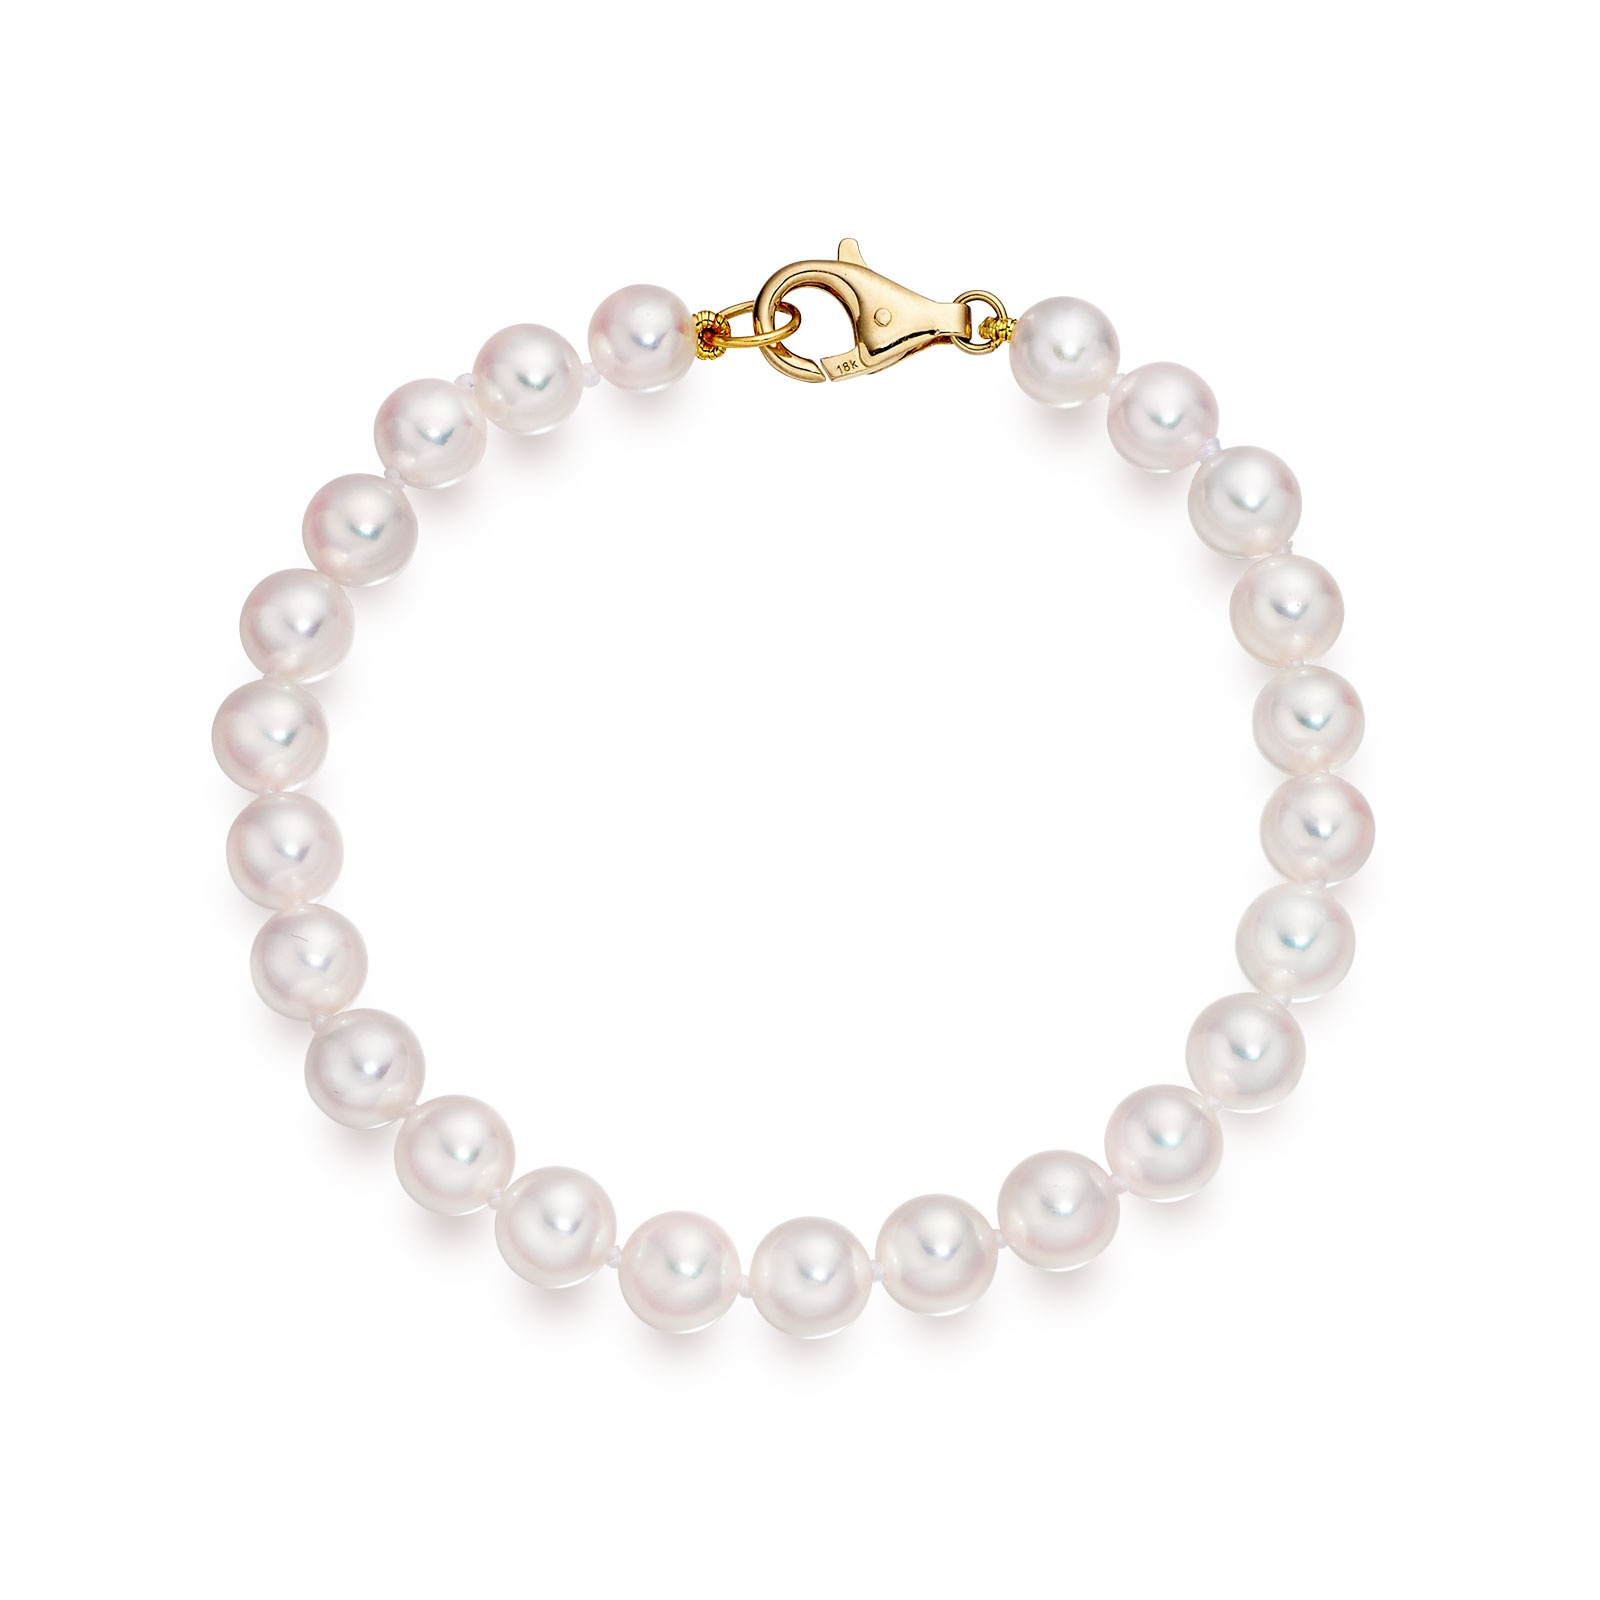 Single White Japanese Akoya Pearl Bracelet with 18ct Gold-1